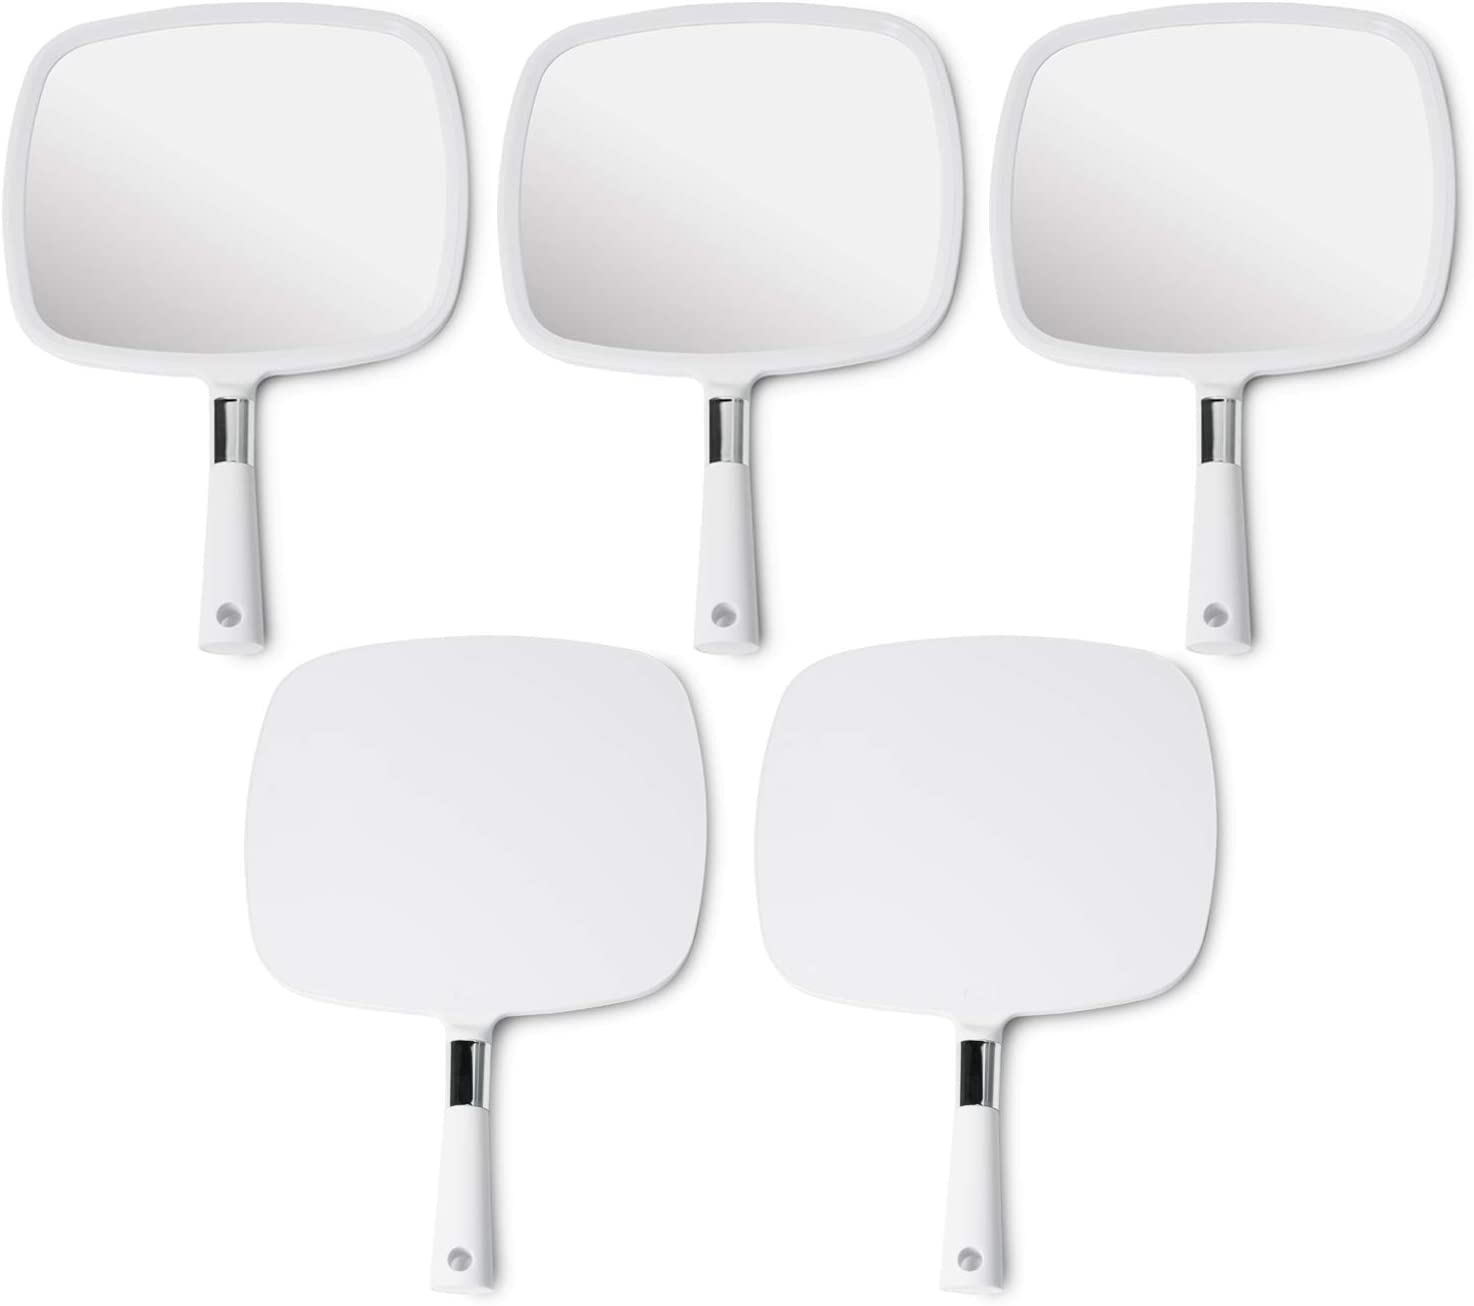 Mirrorvana Large & Comfy Hand Held Mirror with Handle - Professional Salon Model in White (1-Pack): Home & Kitchen